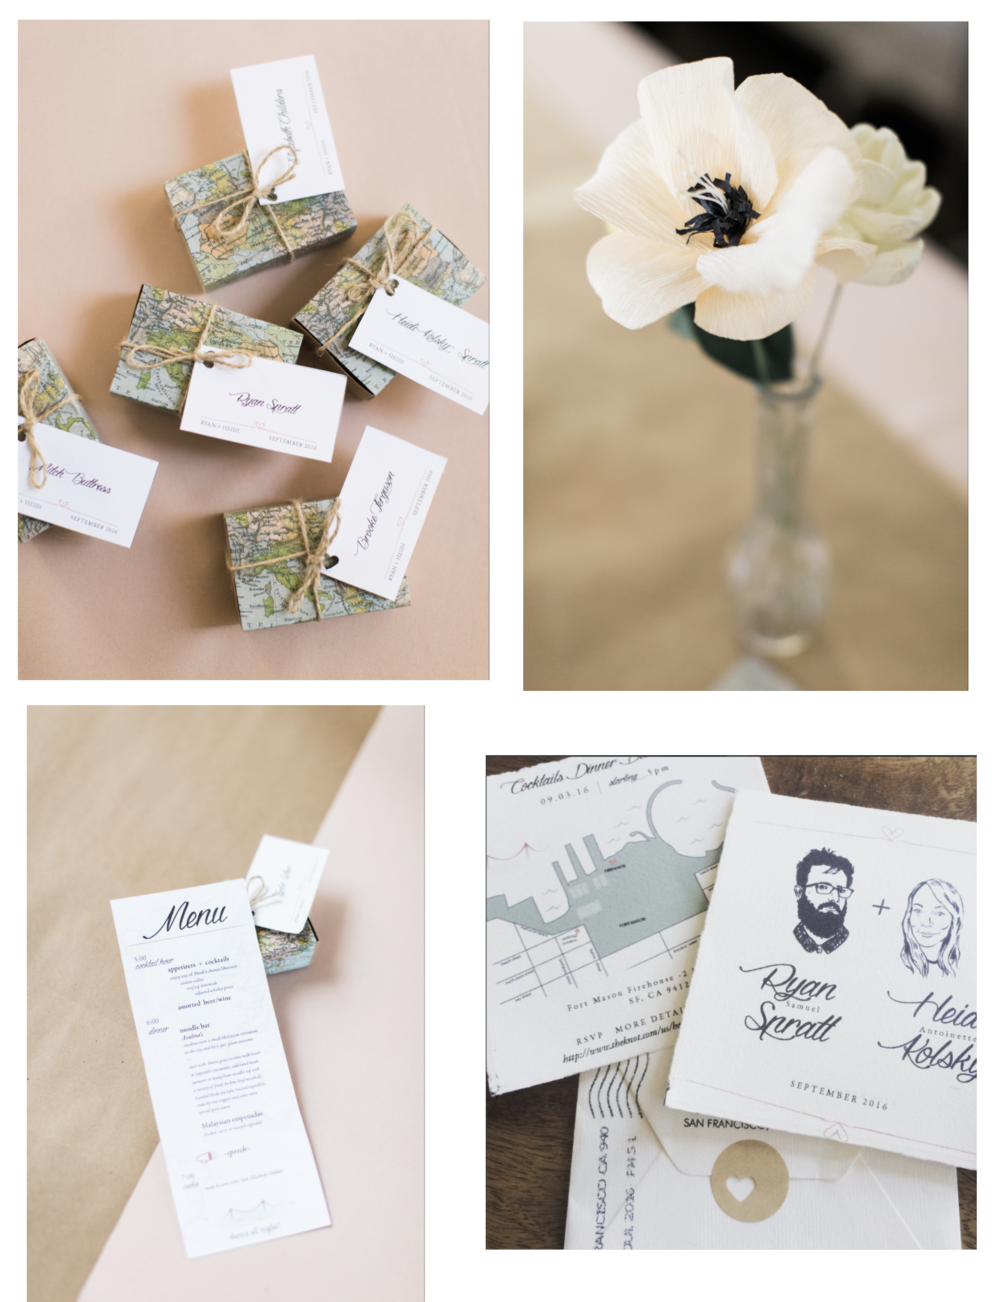 ... A Very Personal Project - invitation, menu and place tag designhandmade paper flowers